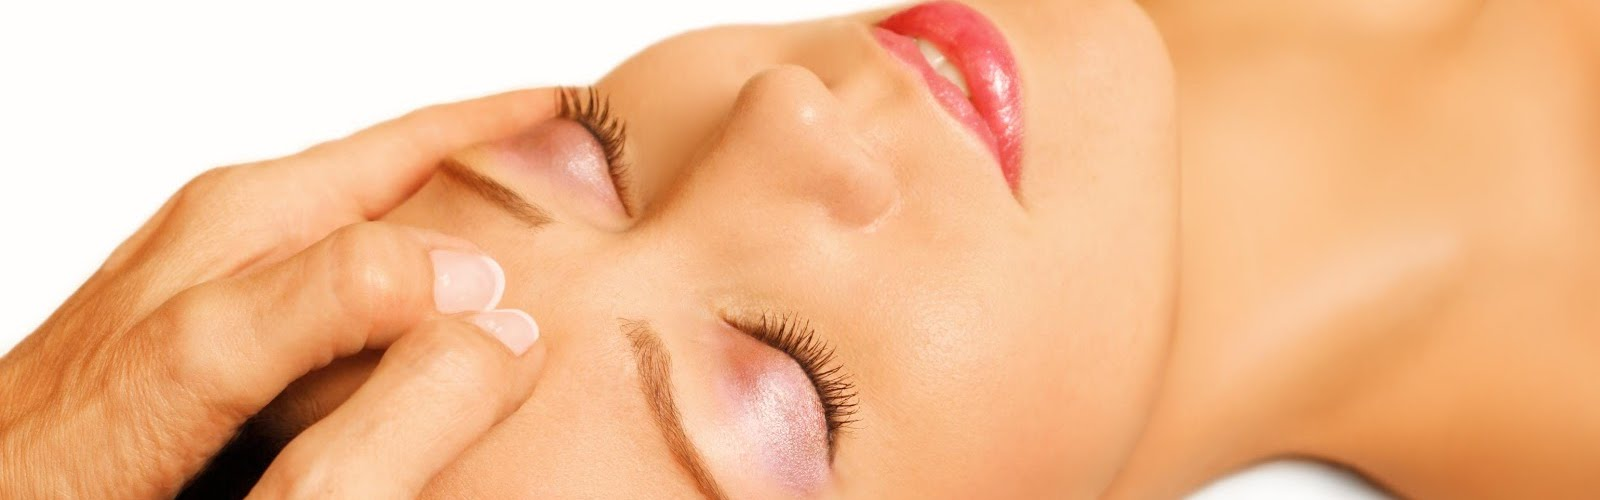 Facial Treatments Hove | Sussex Massage &  Beauty Therapy Spa